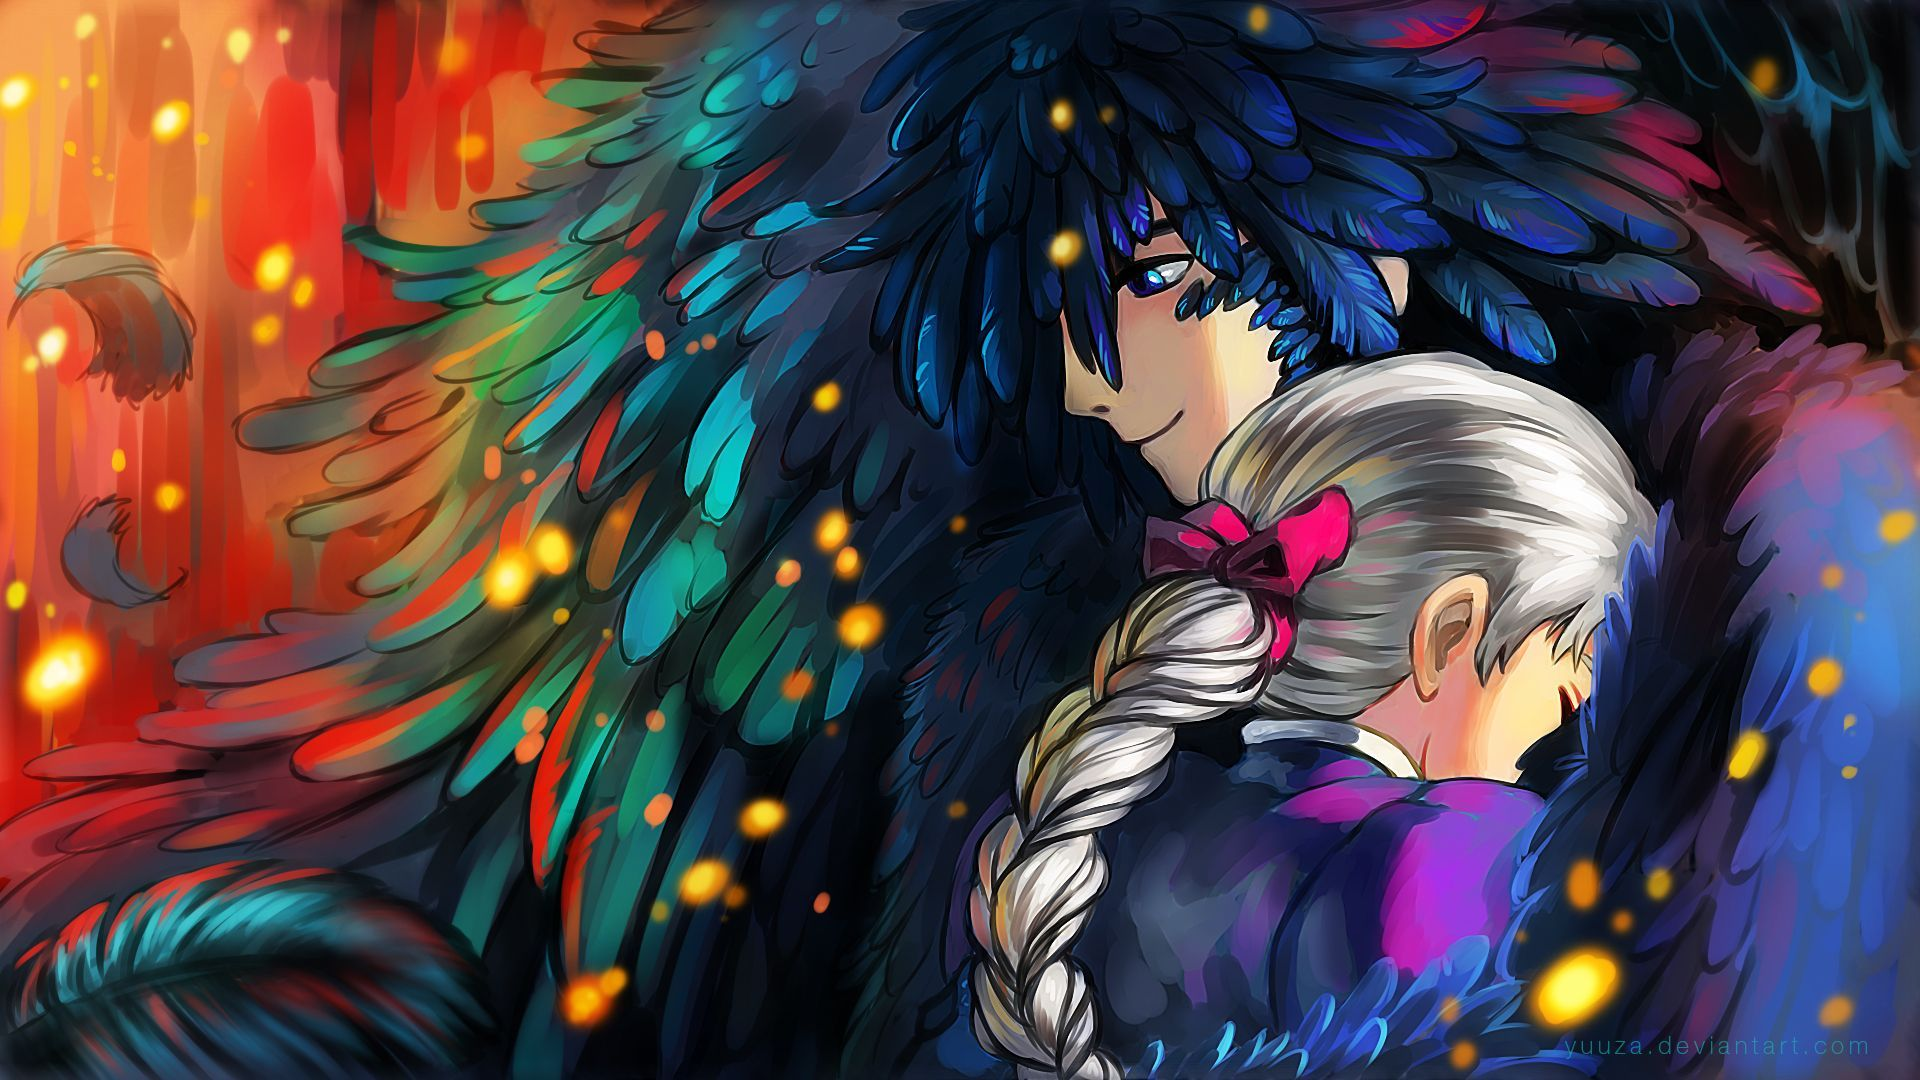 Anime Howls Moving Castle Wallpapers Top Free Anime Howls Moving Castle Backgrounds Wallpaperaccess